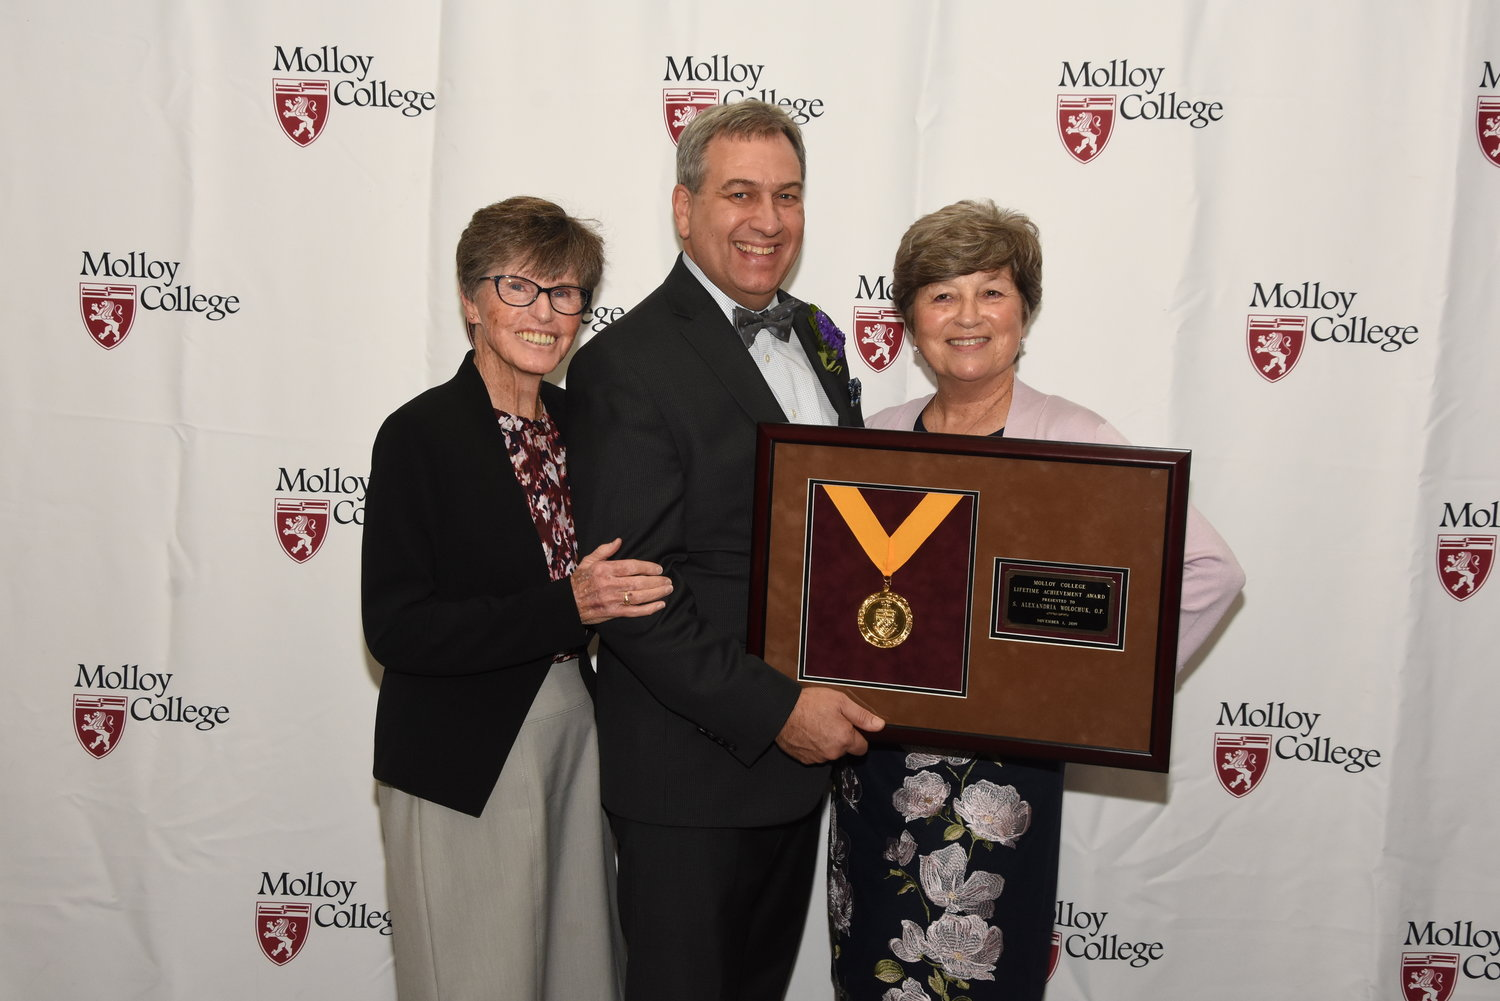 Sister Alexandria Wolochuk, recipient of the Lifetime Achievement Award, with, from left, Sister Margaret McVetty from Molloy College Board of Trustees and Molloy College President Dr. Drew Bogner.